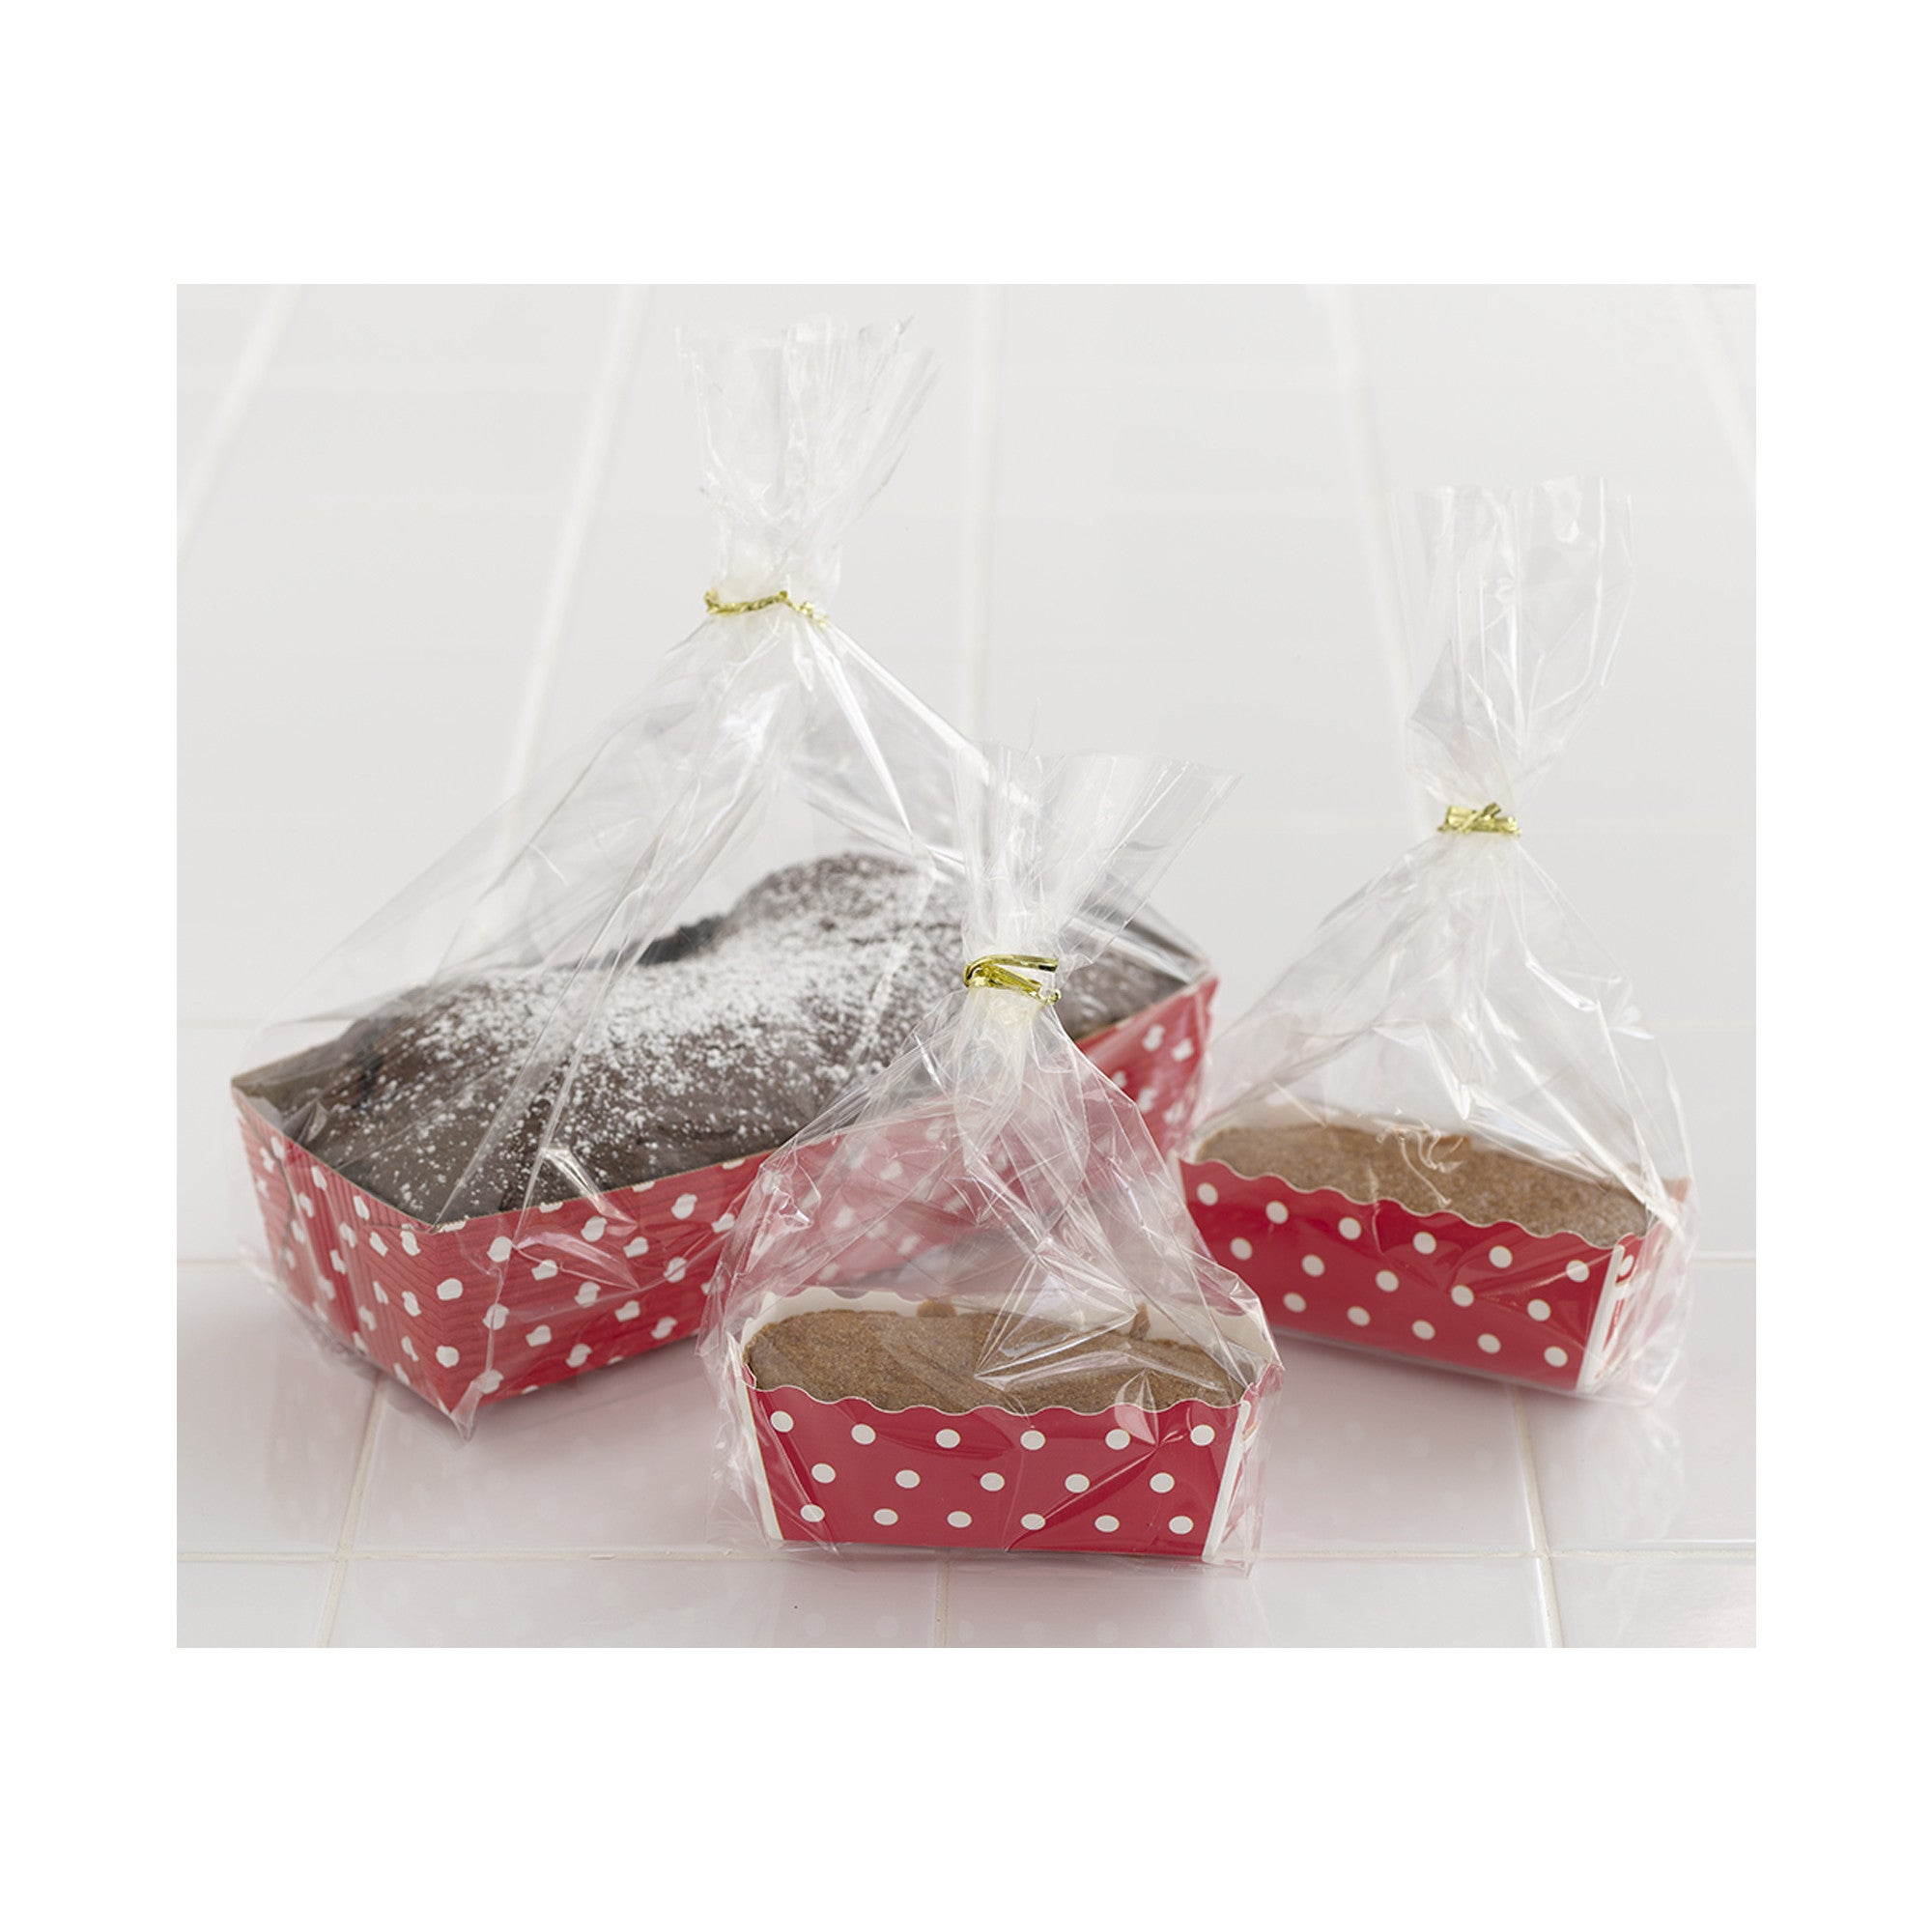 "Bags + Twist Ties, Gift Bags for 4"" Ruffled Cup - Paper Bake Shop"